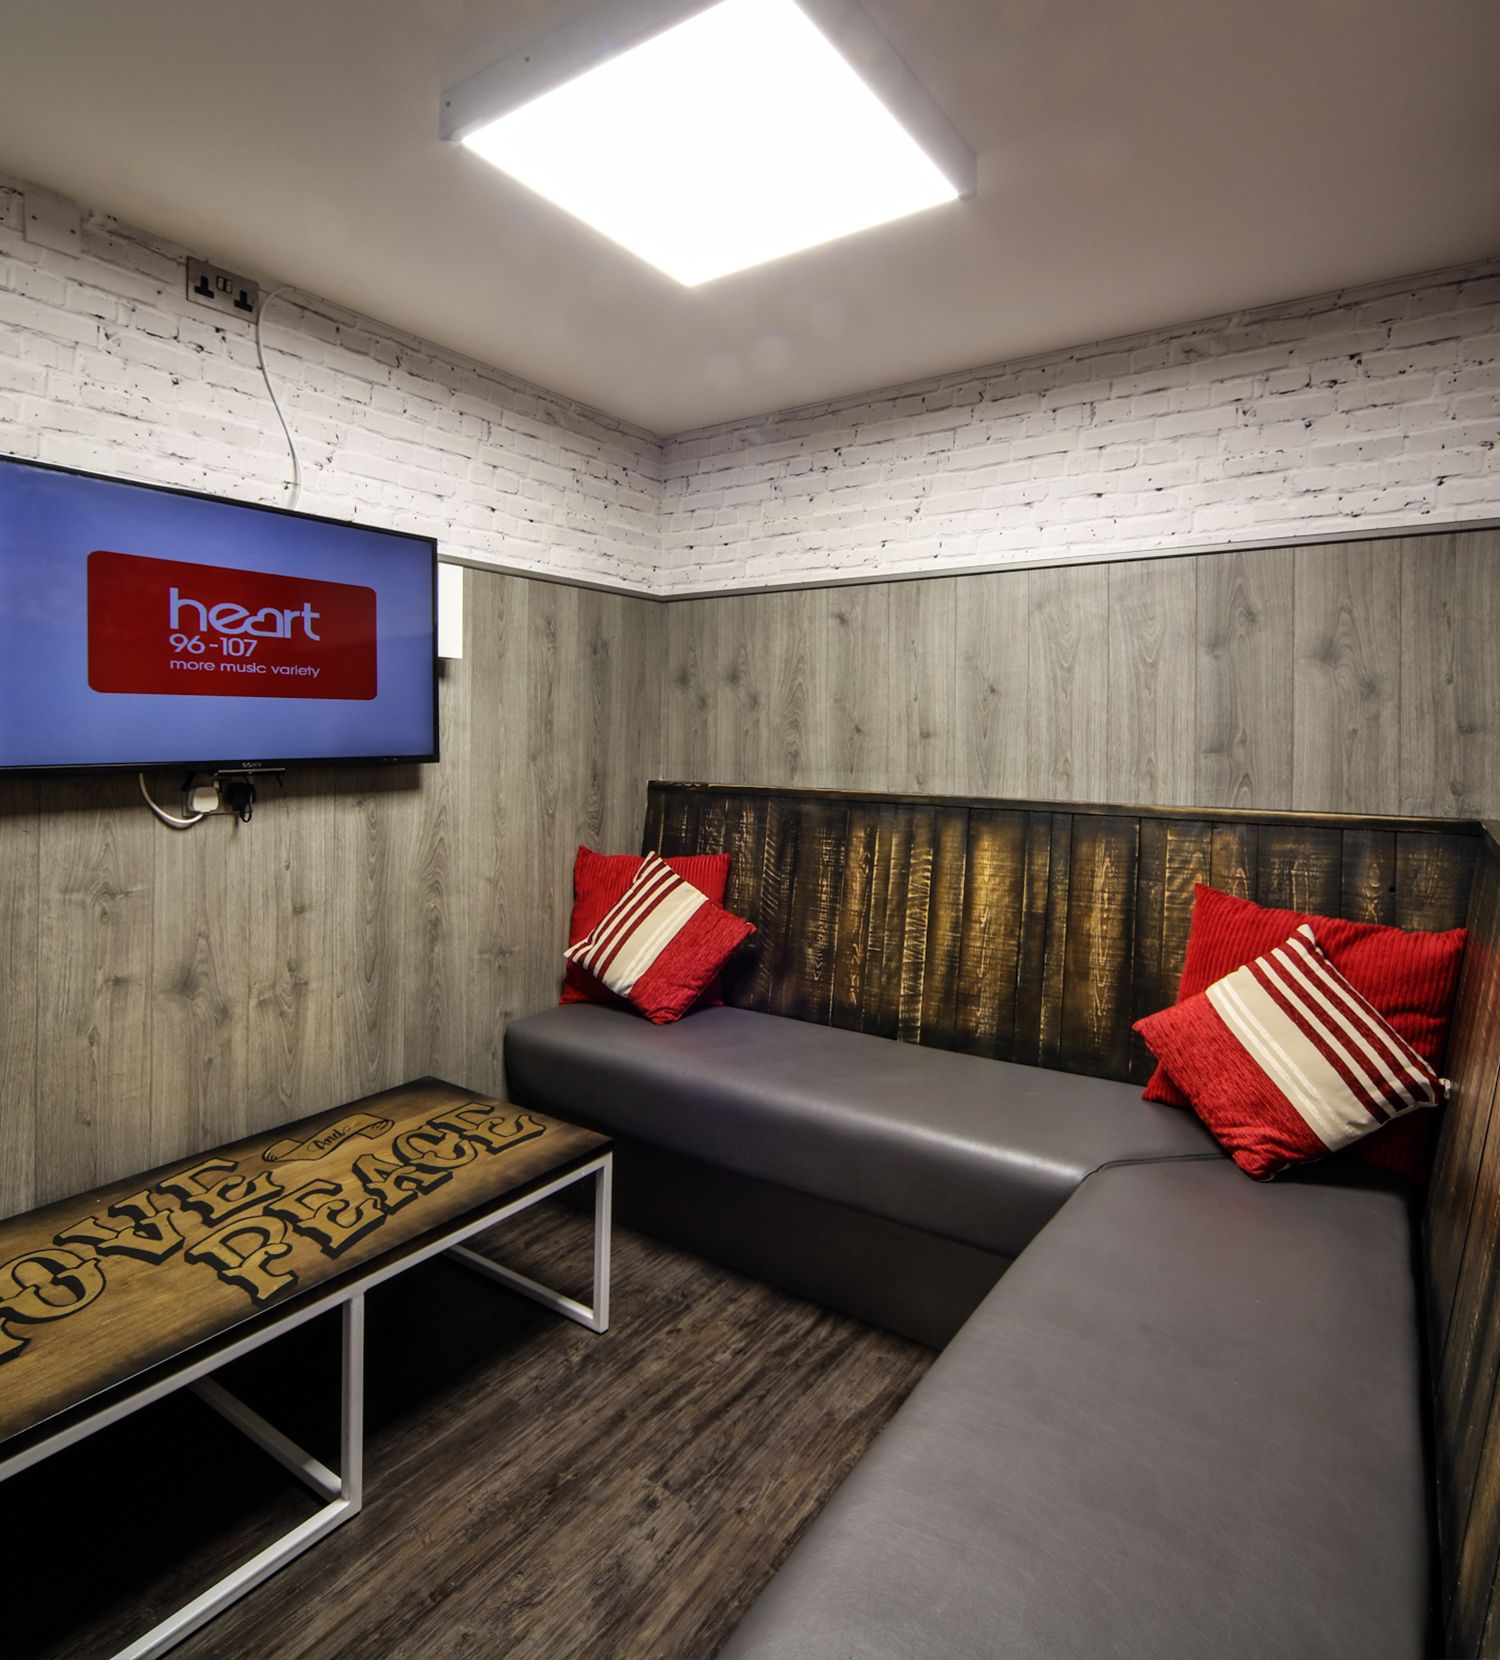 Suites at Euro Hostel Liverpool